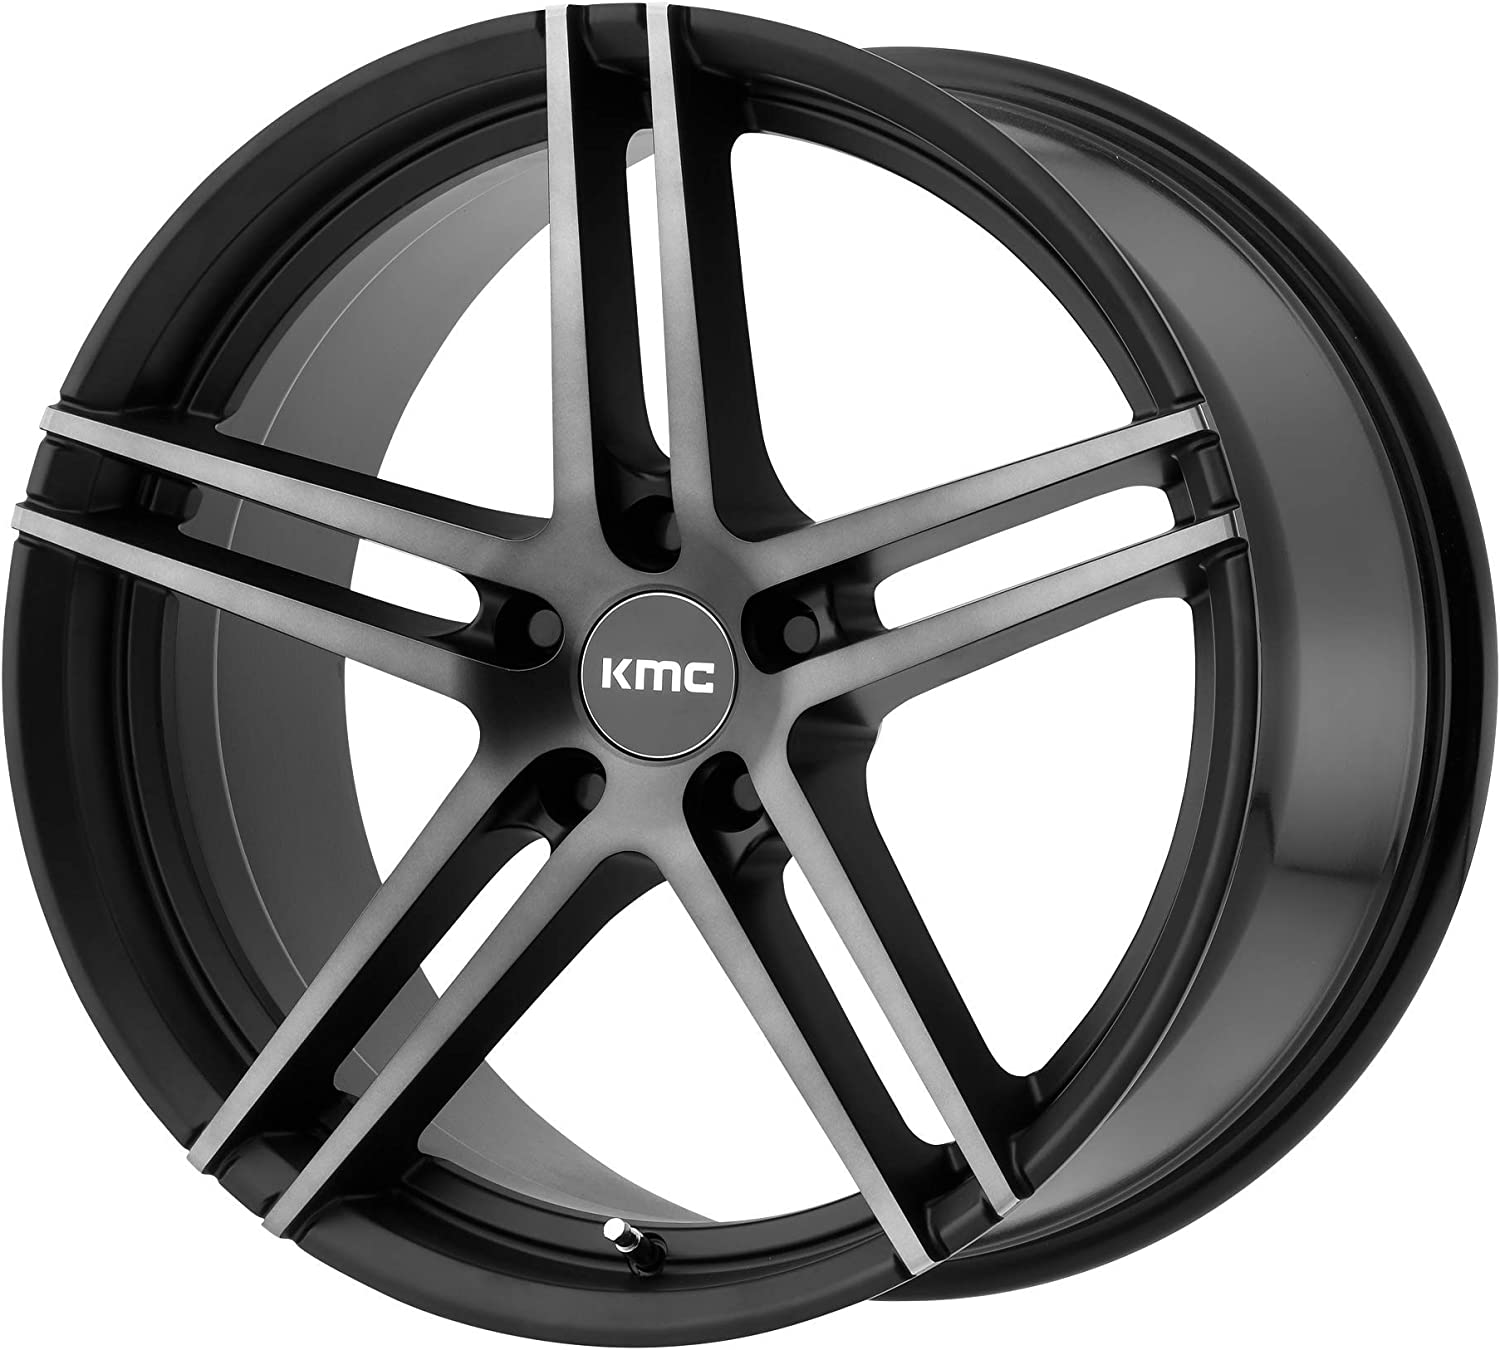 KM703 19X9.5 Beauty products 5X112 S-BLK In a popularity TITAN FACE RIM 45MM TOTAL 1 of